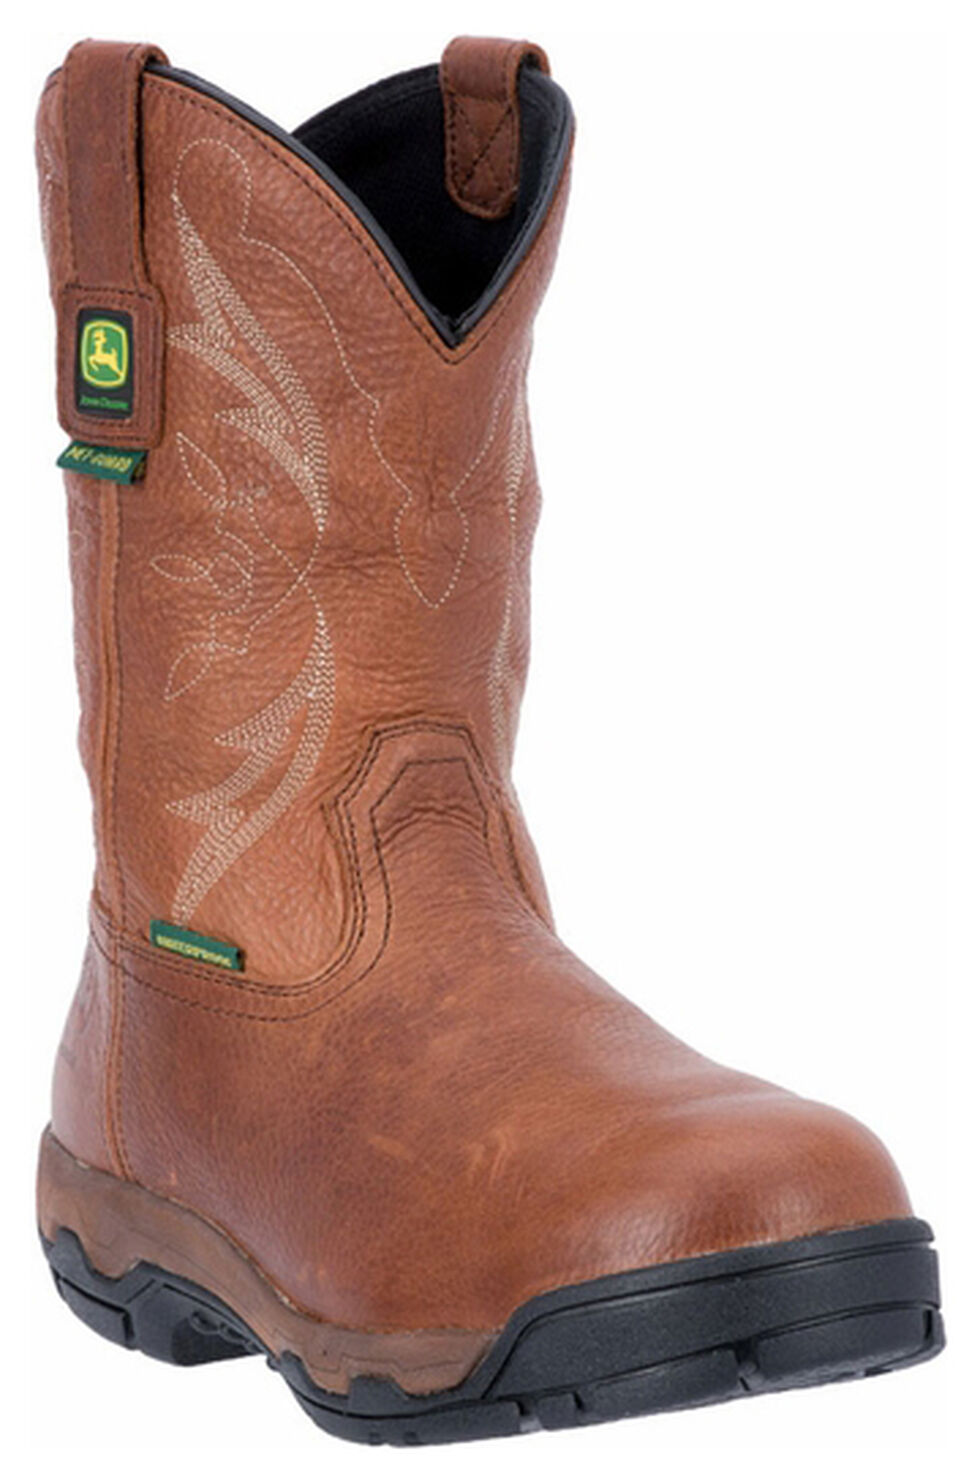 John Deere Men's Leather Pull-On Waterproof Work Boots - Safety Toe, Cinnamon, hi-res